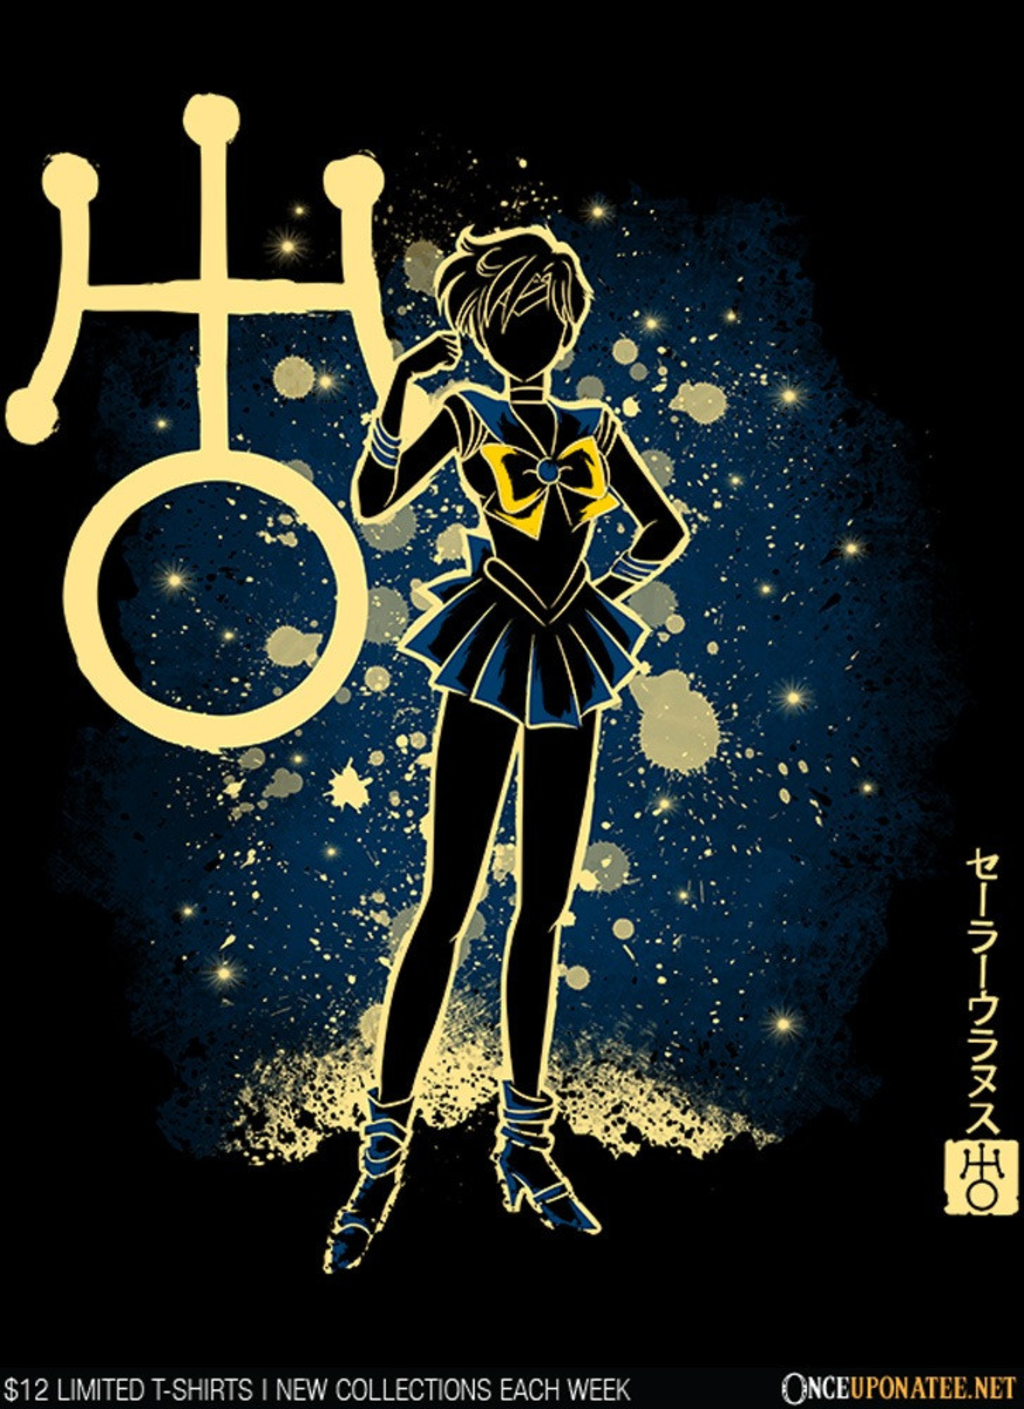 Once Upon a Tee: The Uranus